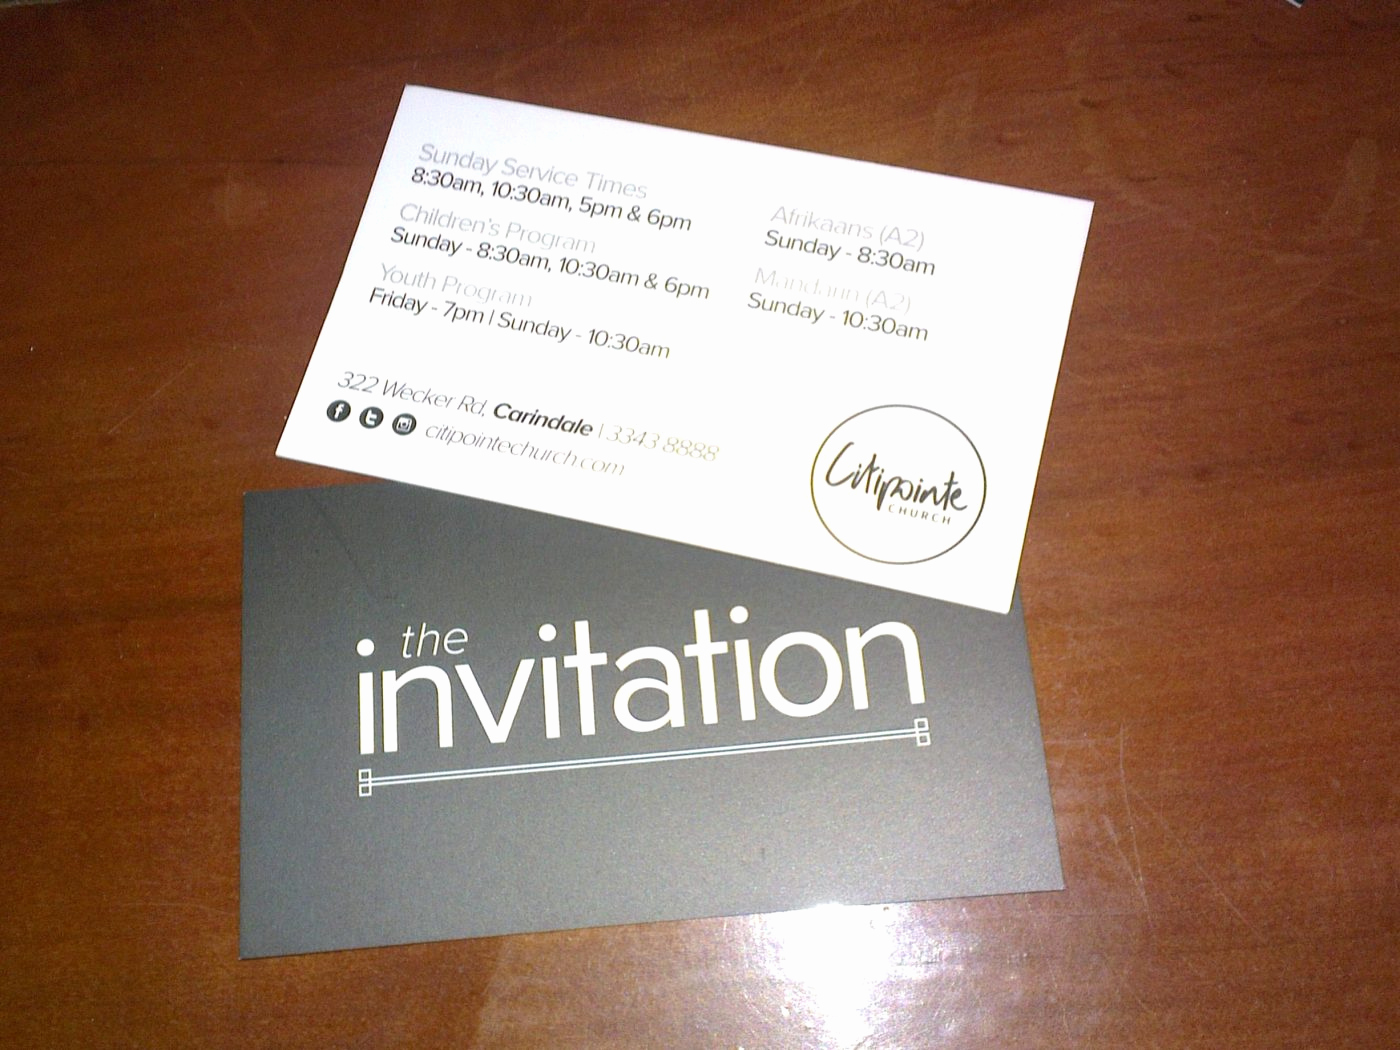 Church Invitation Cards Templates Beautiful Sample Church Invitation Flyers Free Certificate